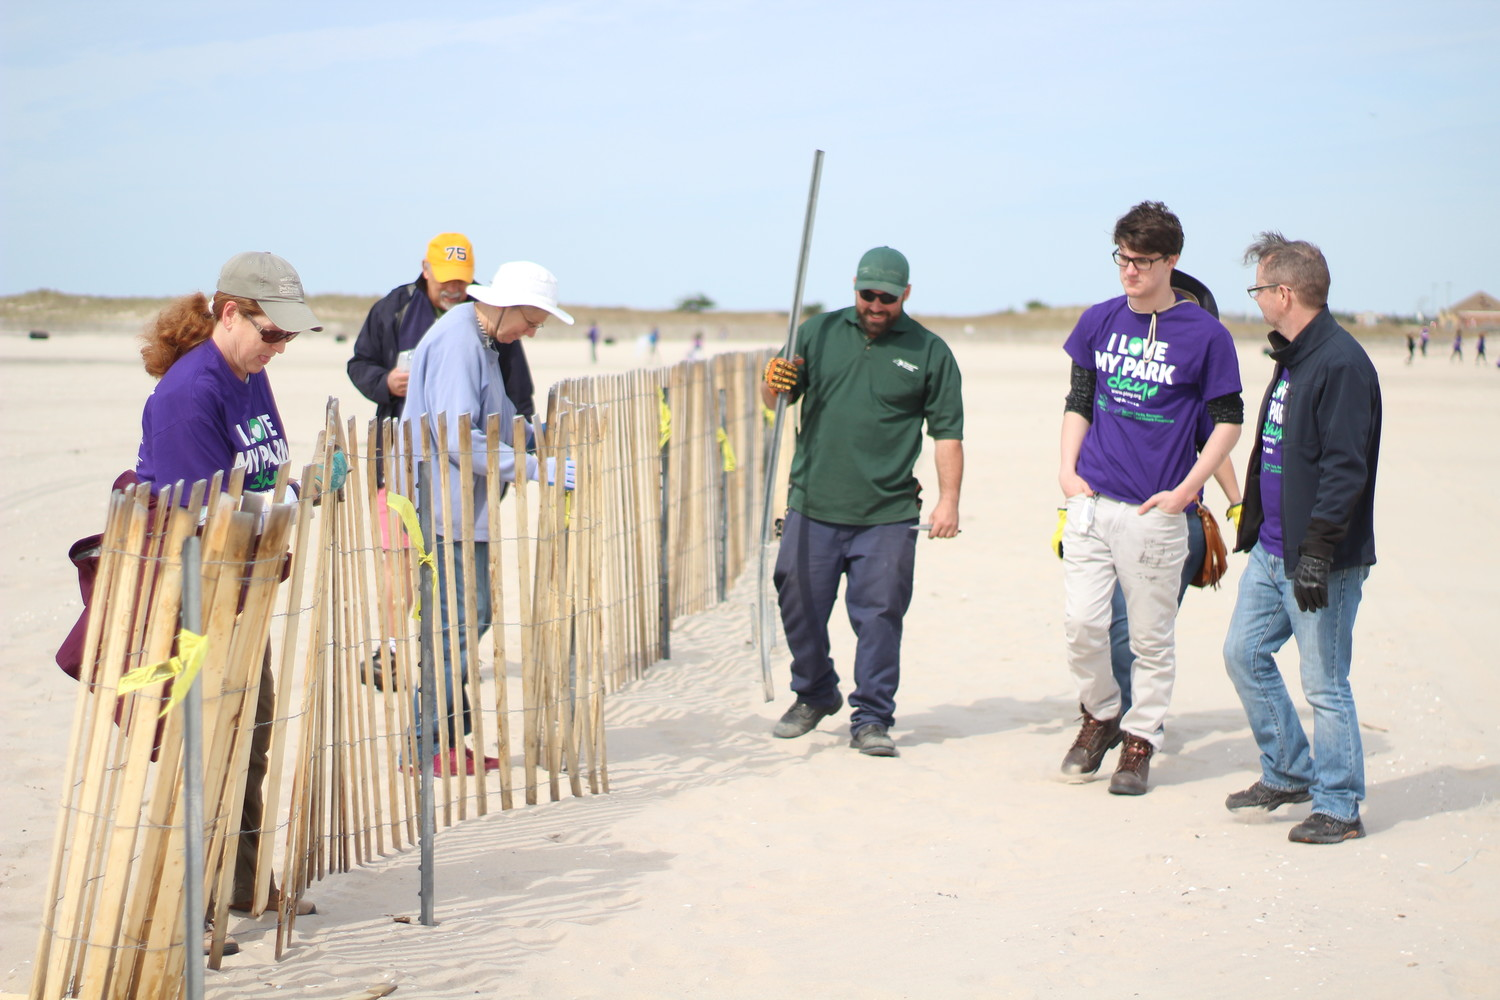 Jones Beach State Park supervisors and volunteers set up snow fencing, which is used to make sand dunes and creates an emergency lane for the upcoming air show.